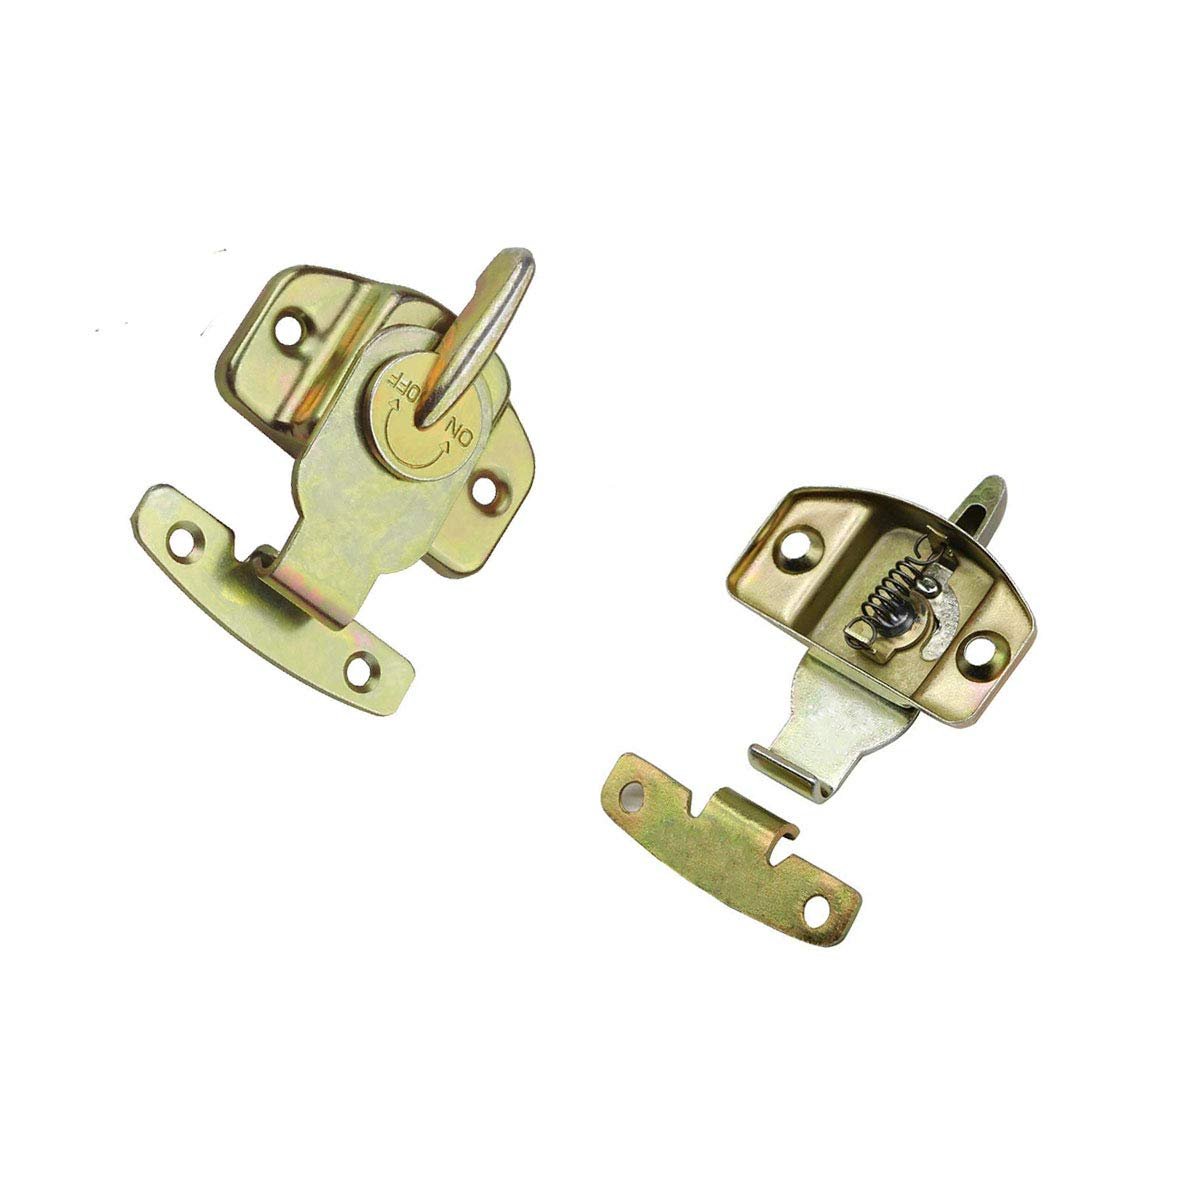 6 Pieces Metal Table Locks Oneup Brass Dining Training Table Buckles Connector Drawer Cabinet Hardware Accessories with Screws